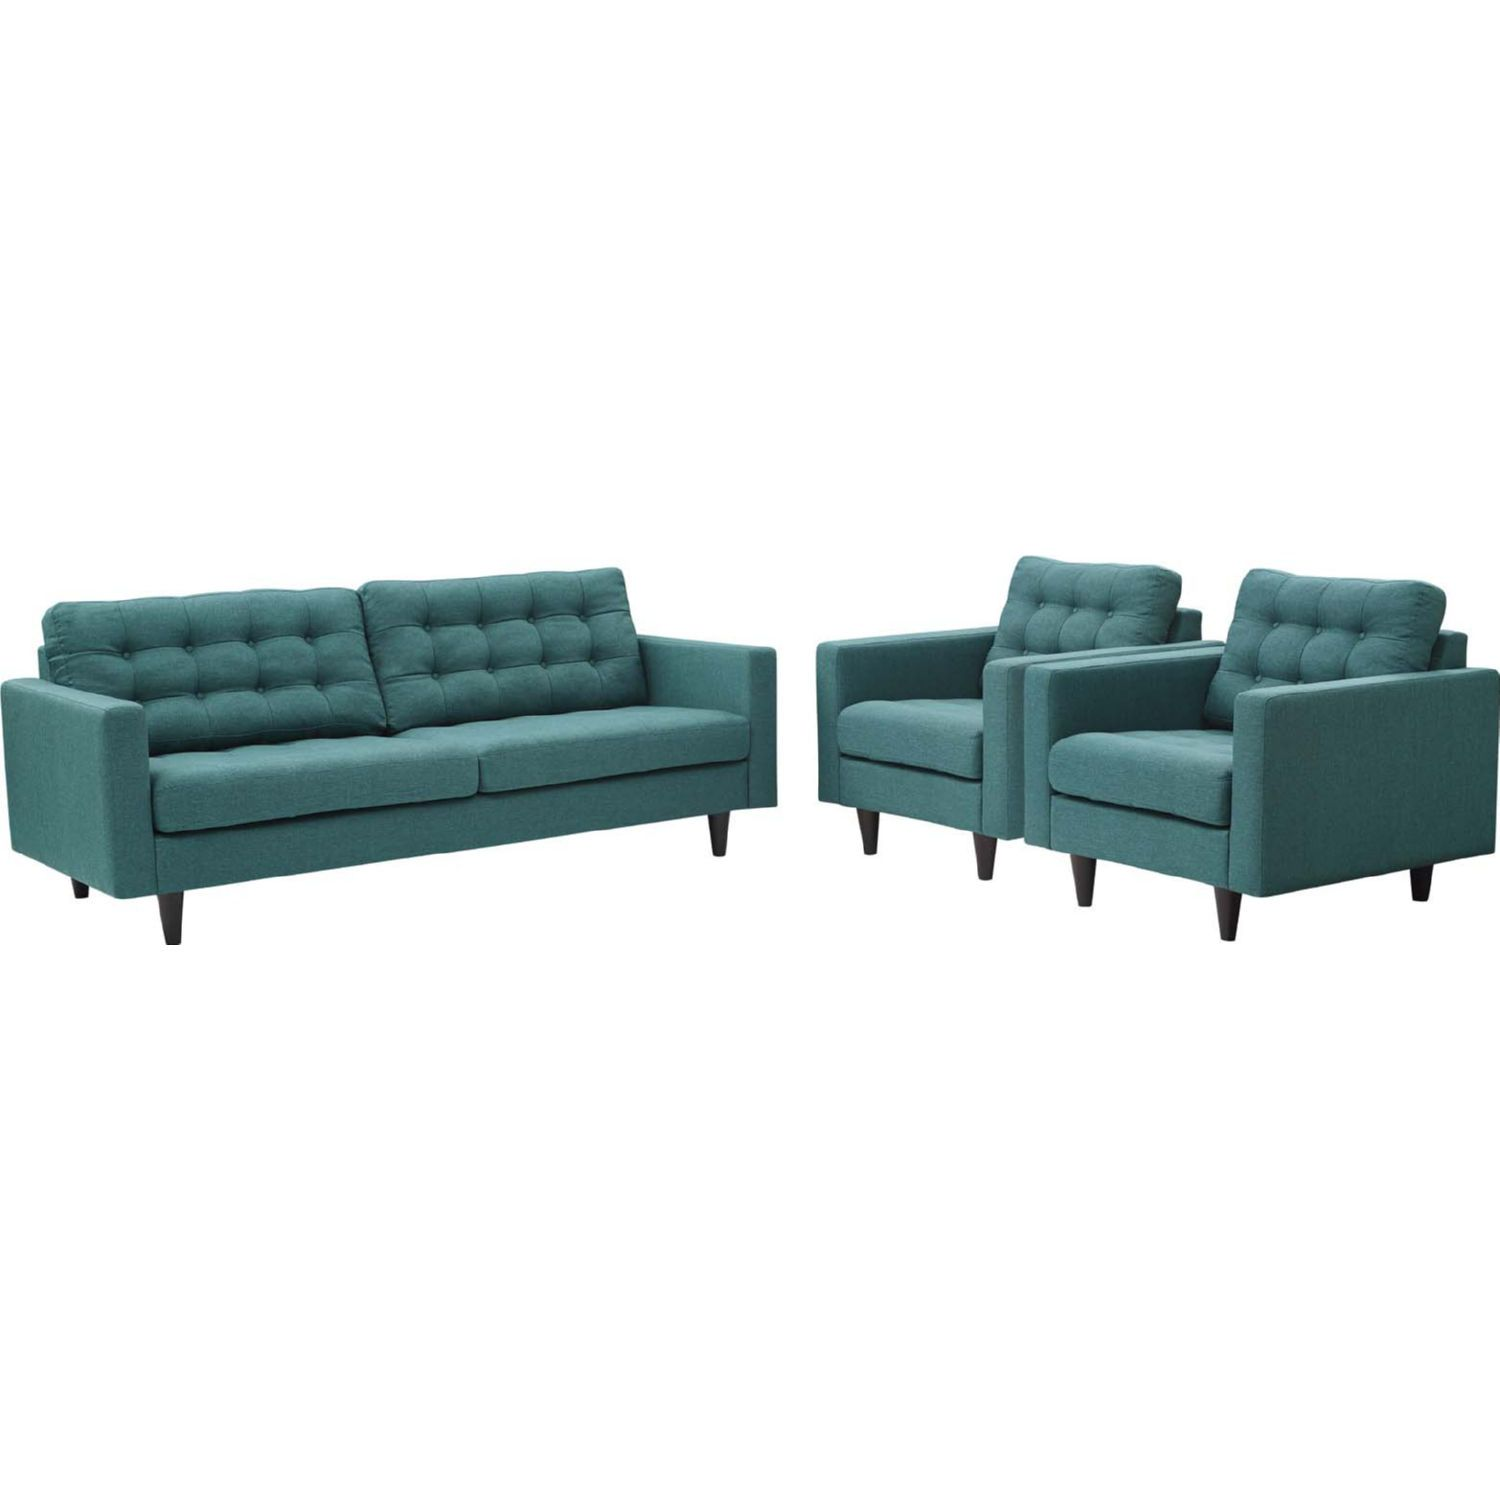 Stupendous Empress Sofa 2 Arm Chair Set In Tufted Teal Fabric By Inzonedesignstudio Interior Chair Design Inzonedesignstudiocom